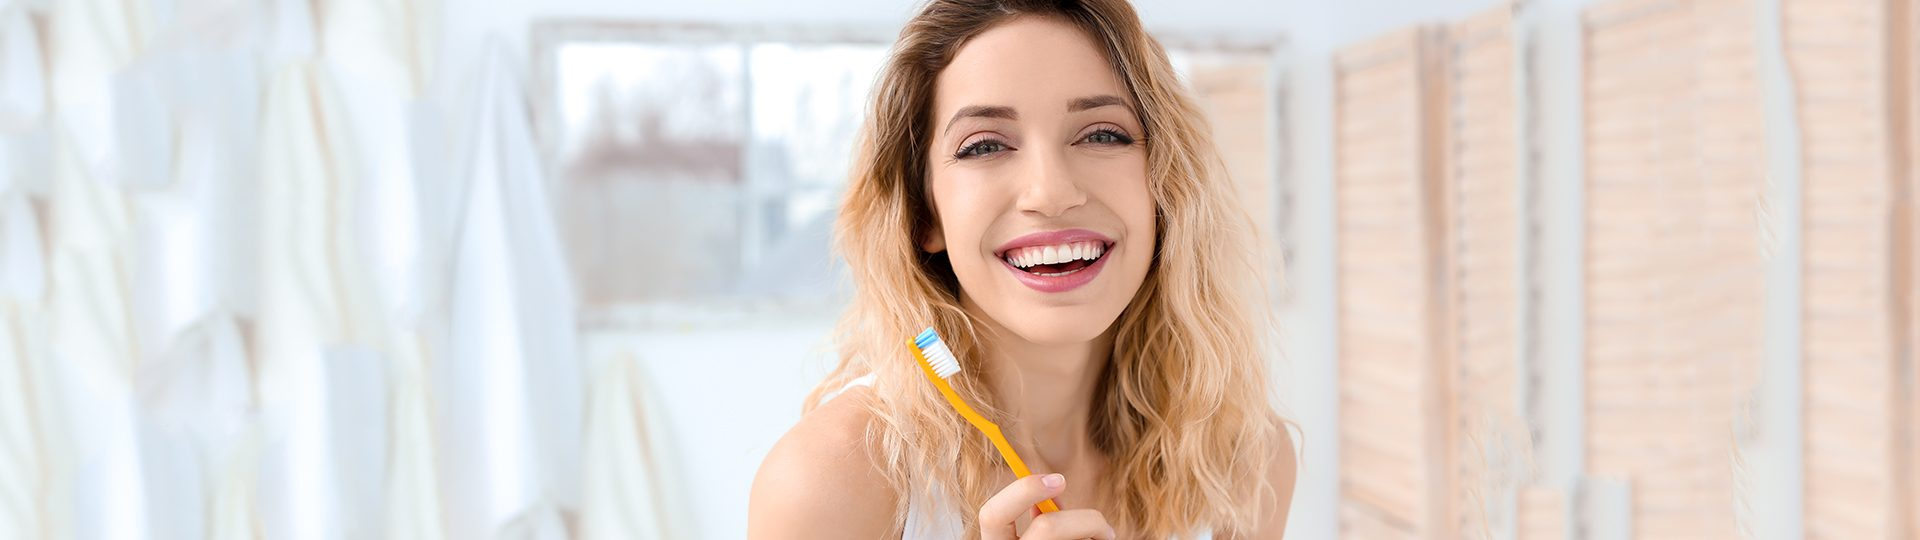 How Veneers Can Brighten Your Smile and Boost Your Confidence